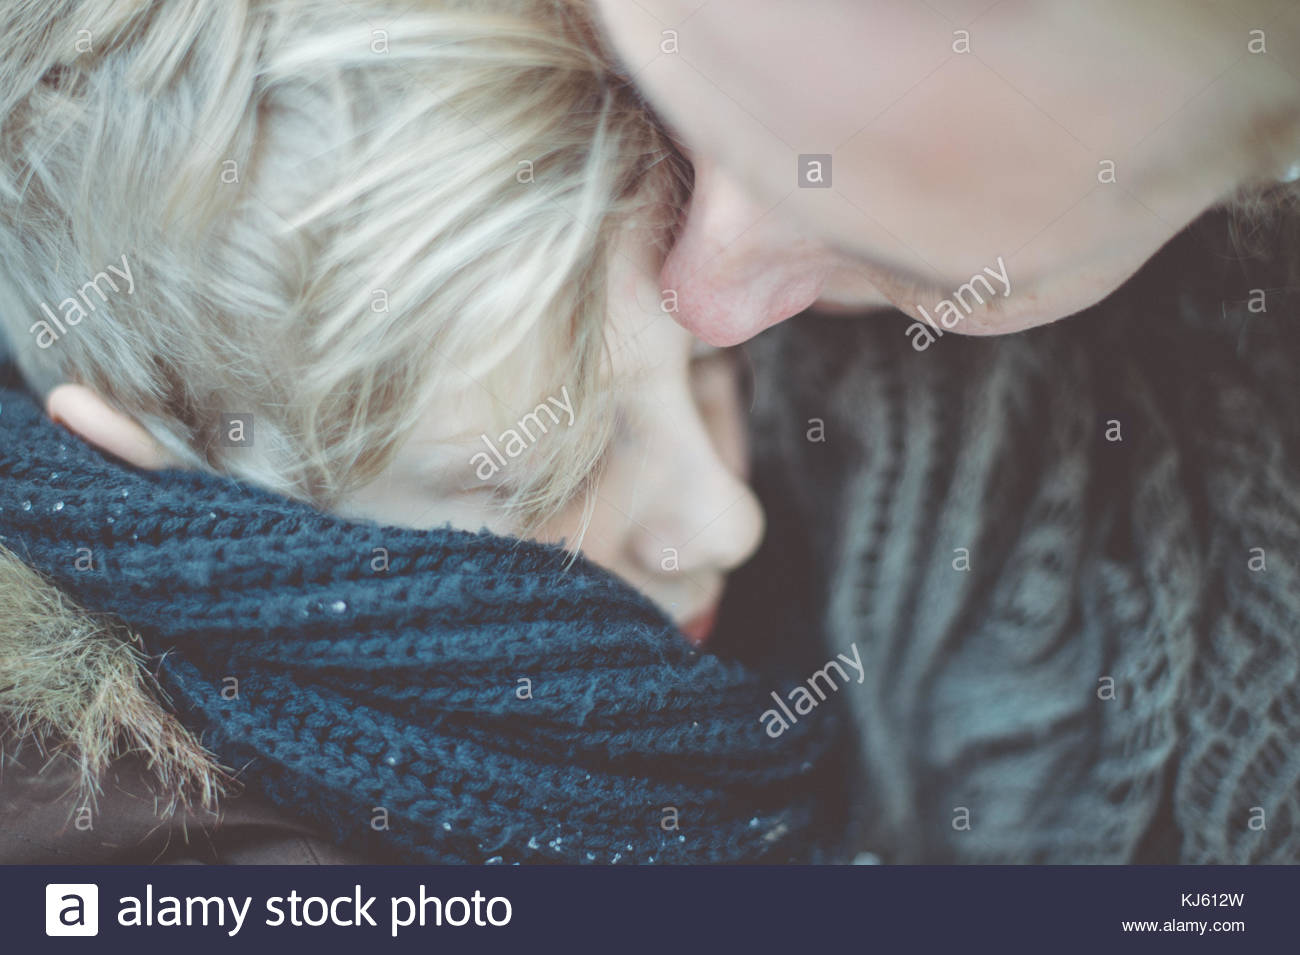 Couple cuddling - Stock Image